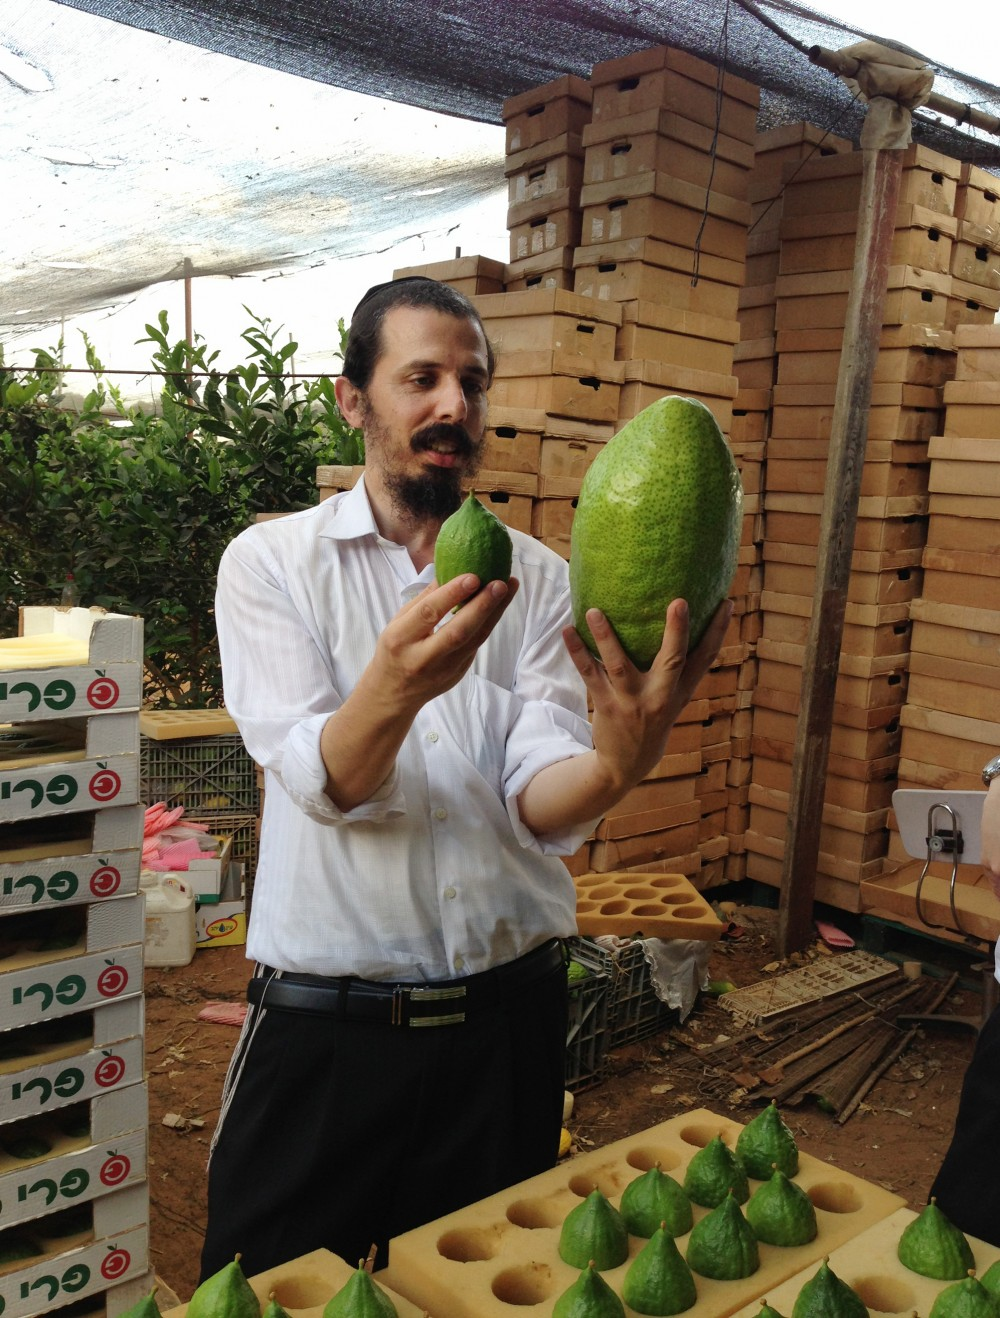 A wholesaler picking out fruit in an Israeli etrog orchard weighs a large Yemen-style etrog against a smaller variety. He prefers the small ones, and will search through stacks of boxes to find those he considers most beautiful. Photo: Emily Harris/NPR